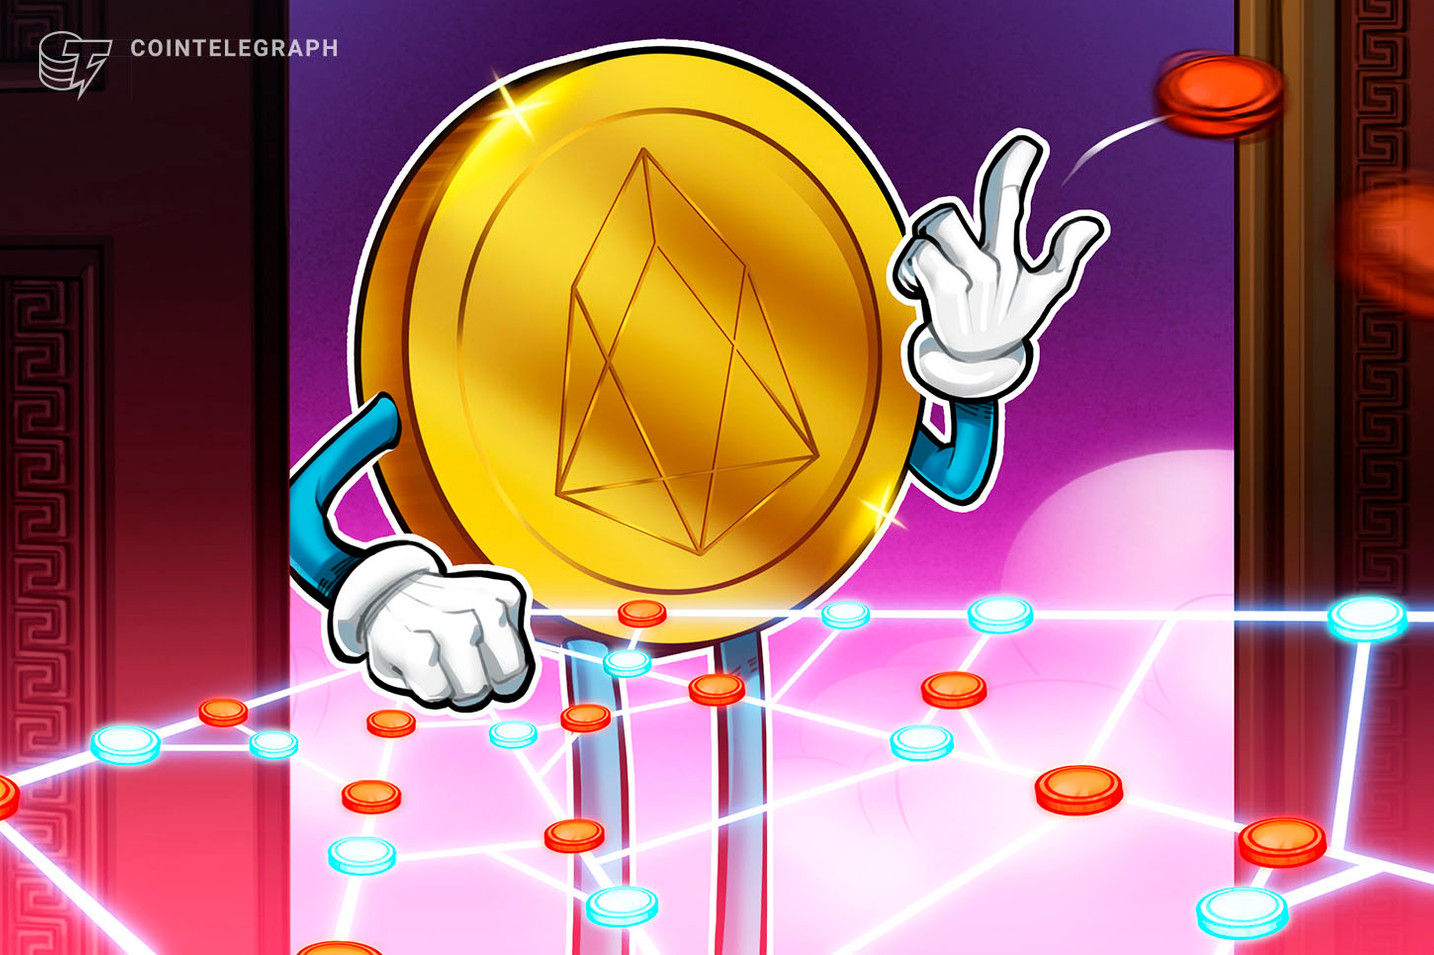 EOS Proves Yet Again That Decentralization Is Not Its Priority